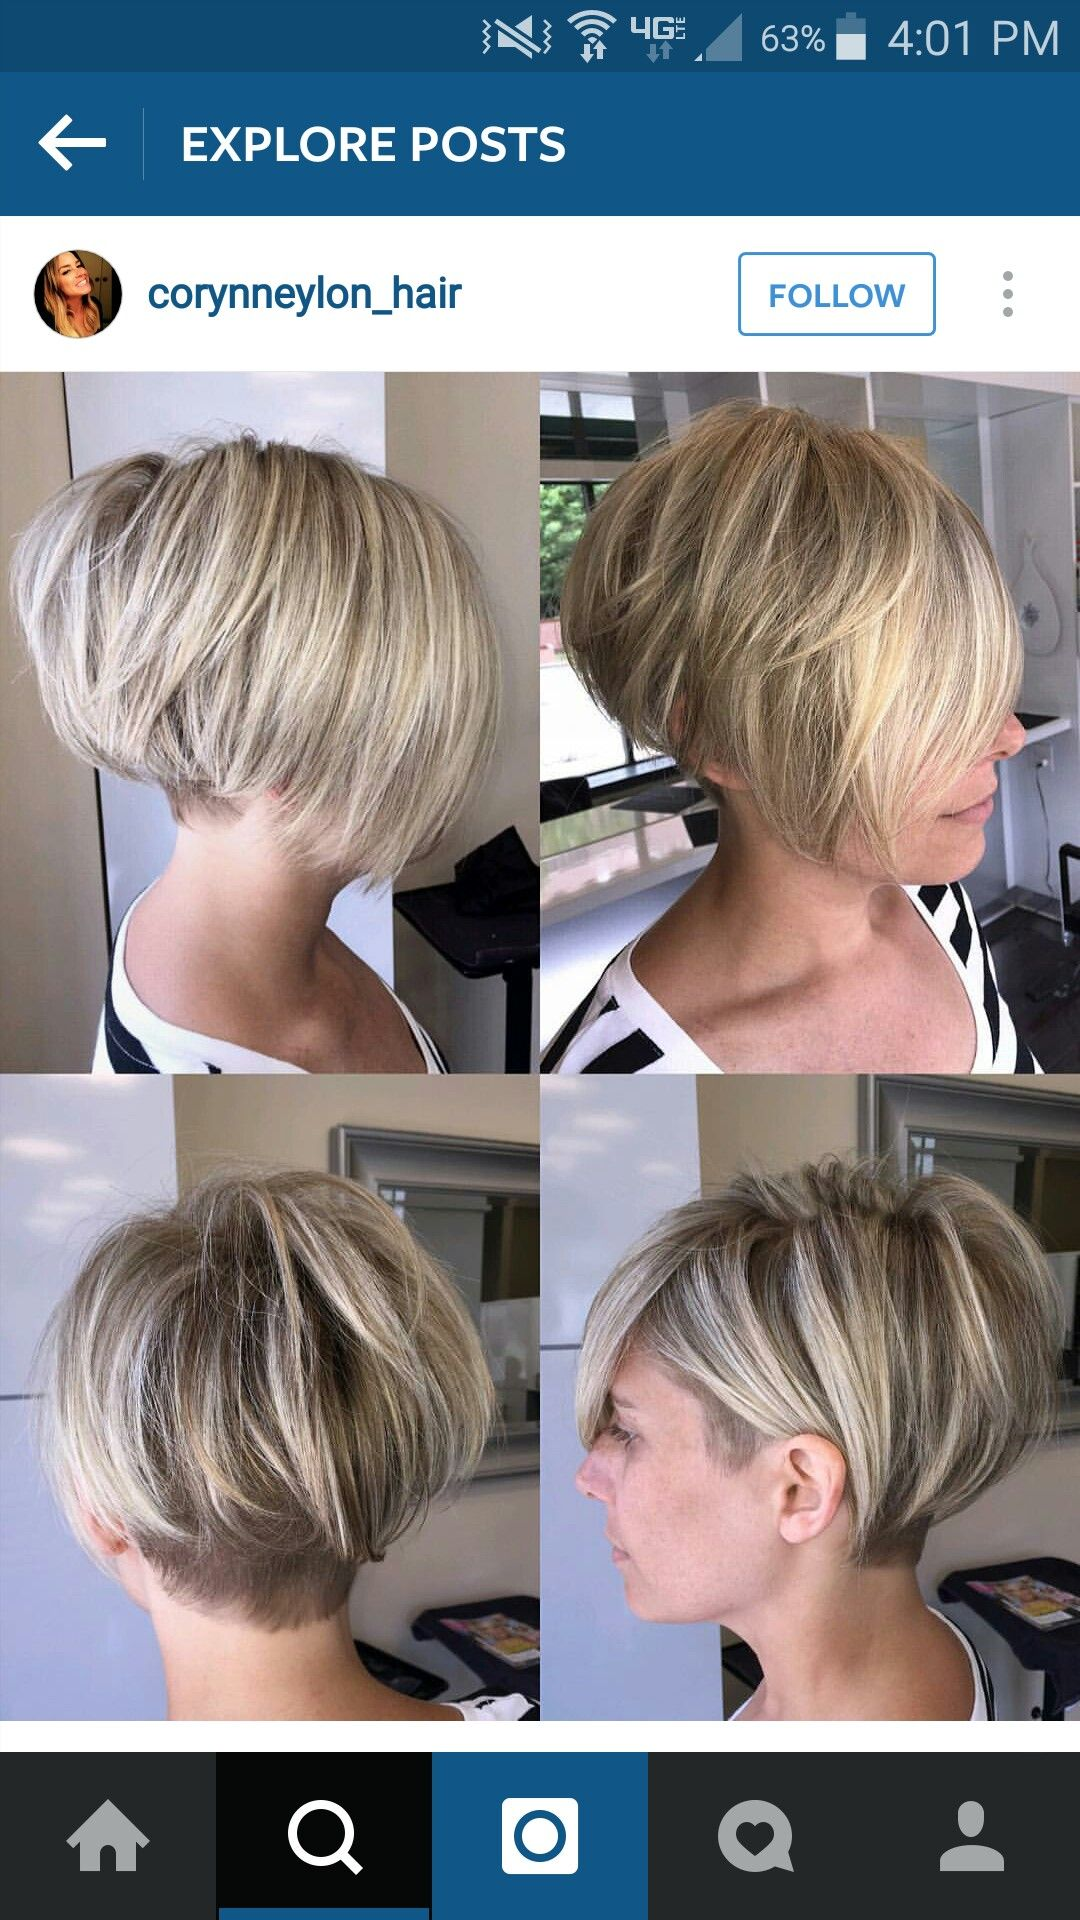 Pin by amber loza on Short hairstyles Pinterest